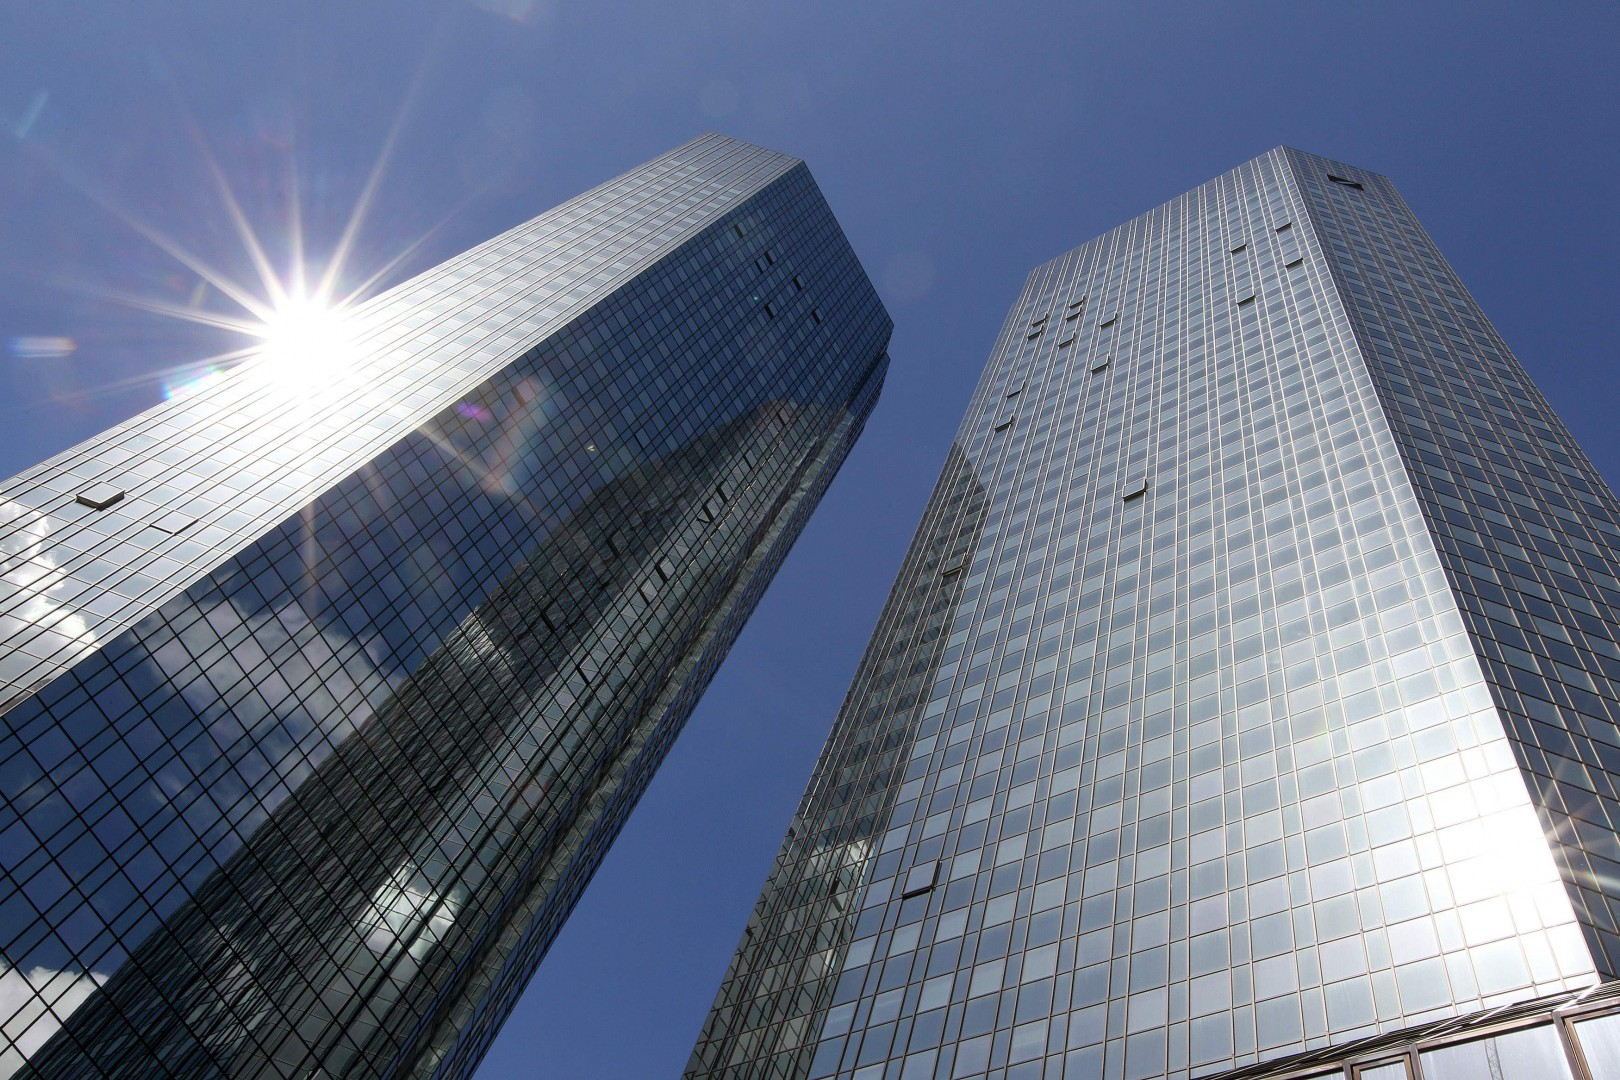 (FILES) In this file photo taken on April 26, 2018 the towers of German Company Deutsche Bank are pictured in Frankfurt, Germany. Germany's biggest lender Deutsche Bank said on July 25, 2018 a major restructuring under its new chief executive was in full swing, as it confirmed second-quarter profits that beat analysts' previous expectations. / AFP PHOTO / Daniel ROLAND